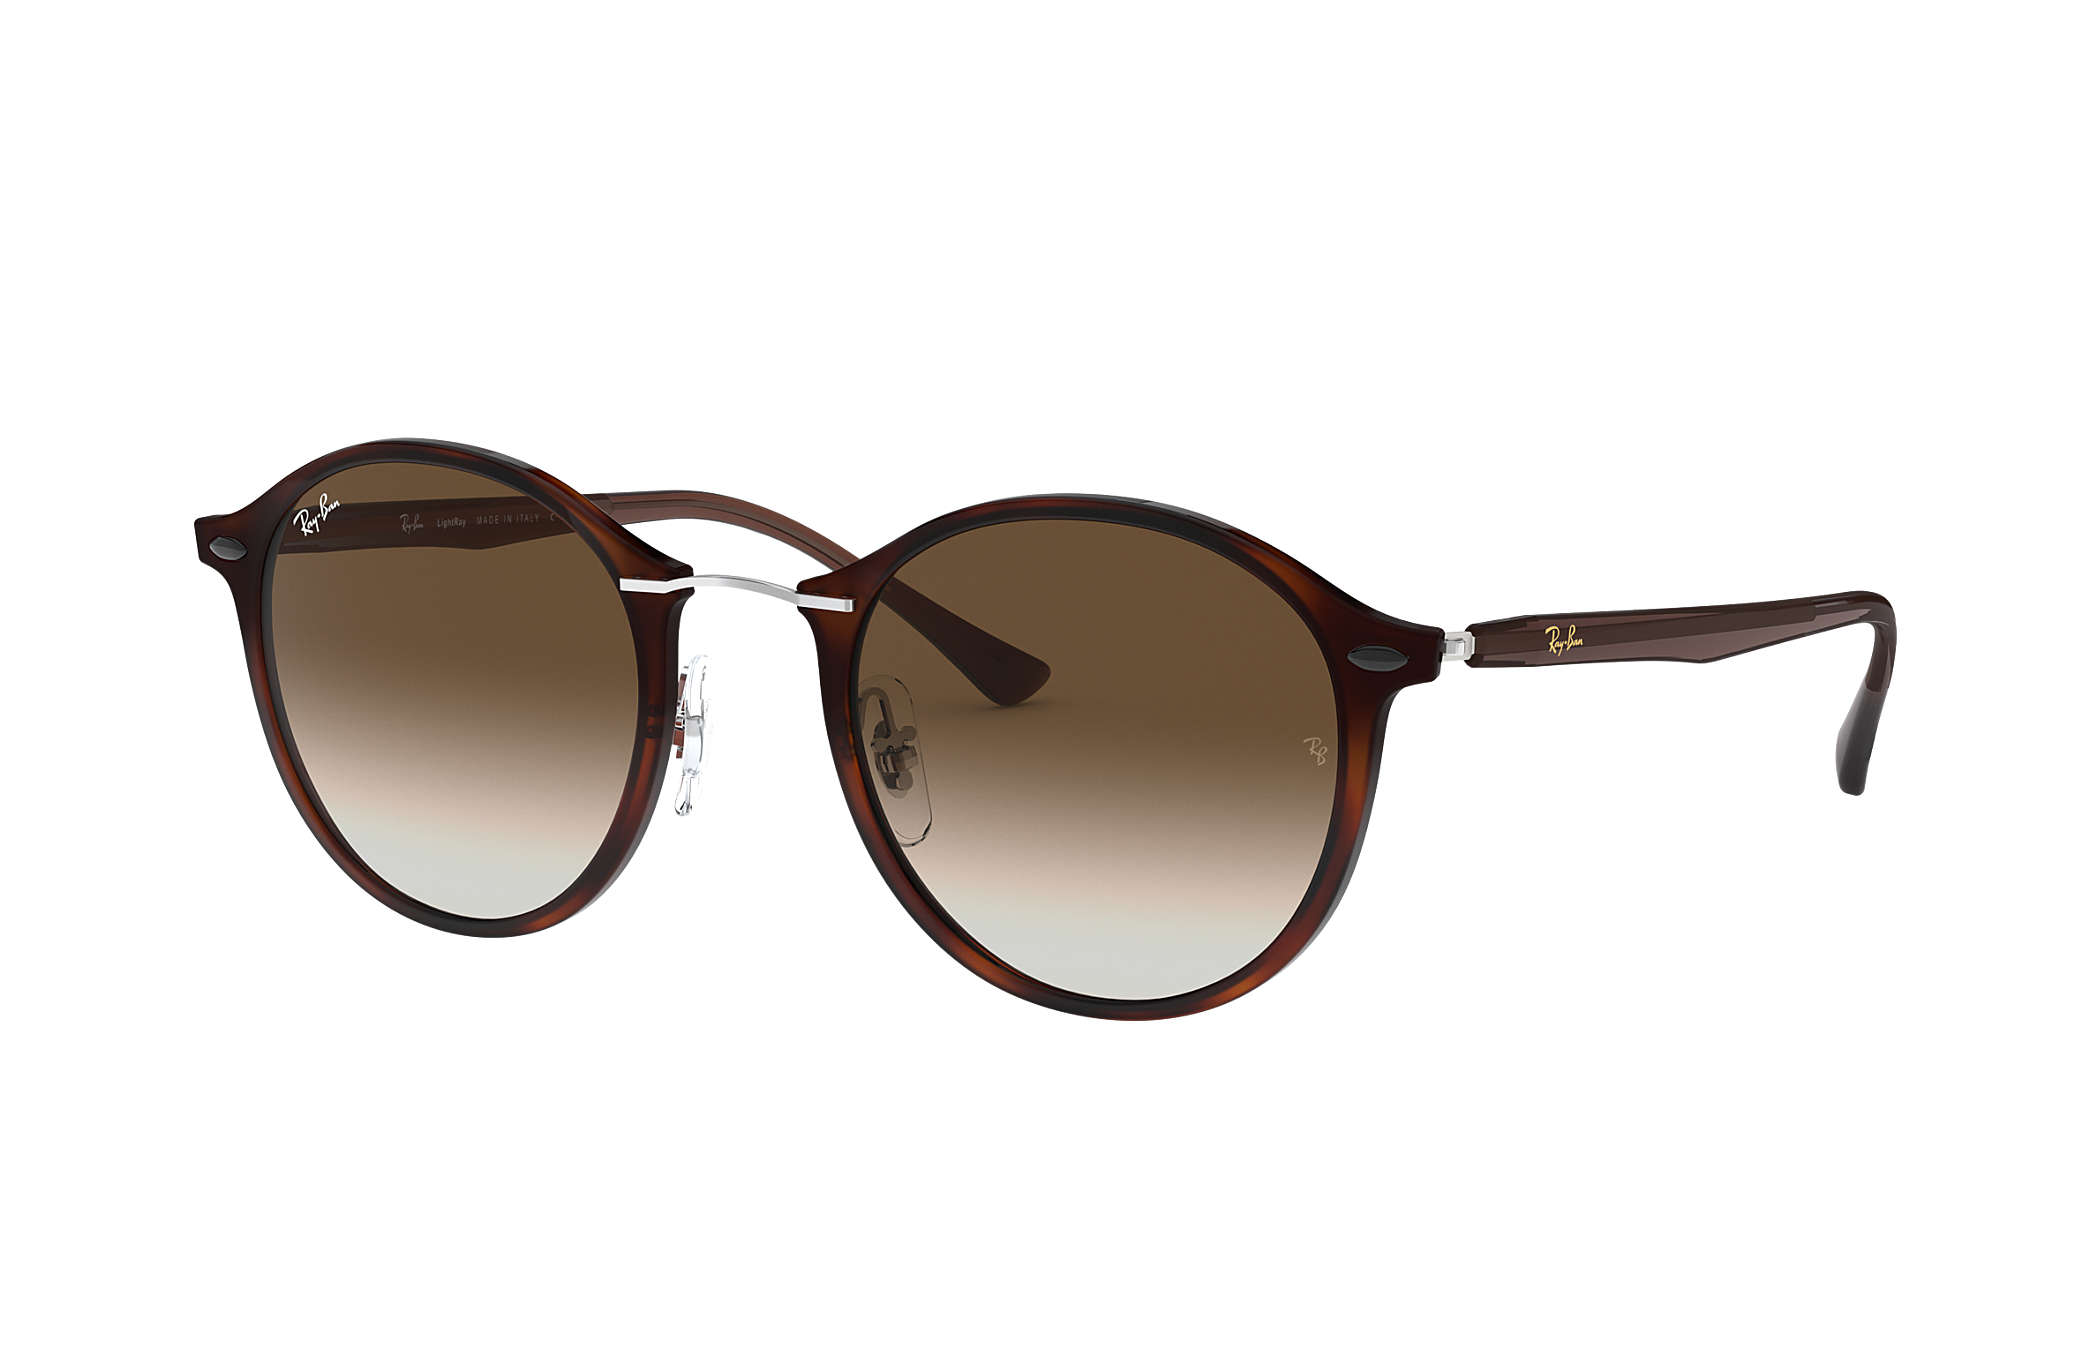 Ray-Ban RB 4242 620113 Sonnenbrille in light havana 49/21 D9kdQX2N